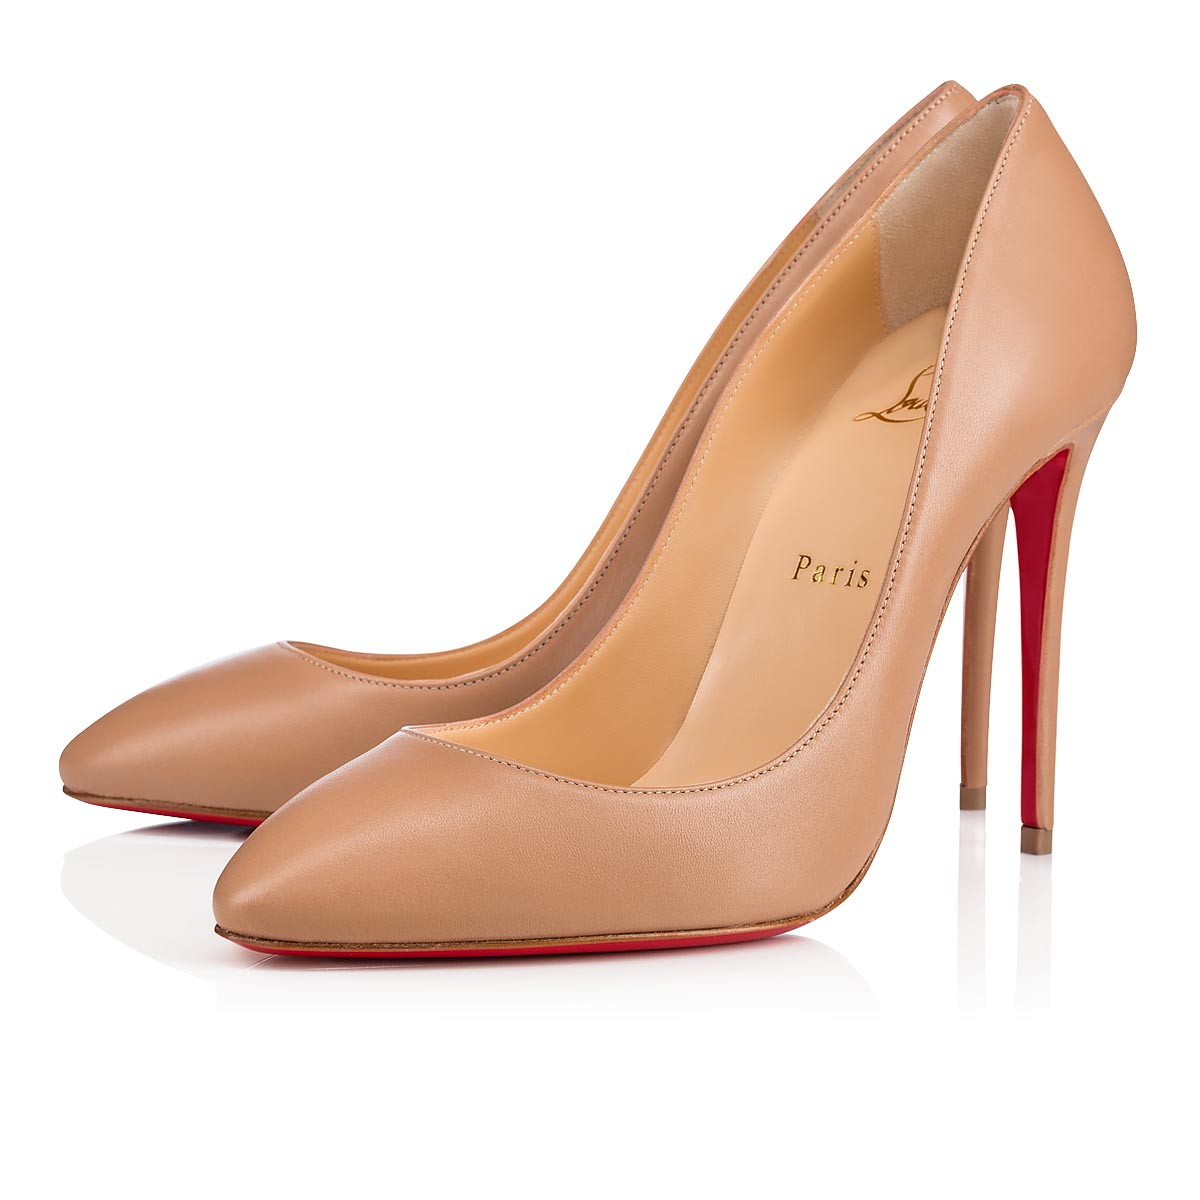 reputable site 863dd 122df Eloise 100 Nude Leather - Women Shoes - Christian Louboutin